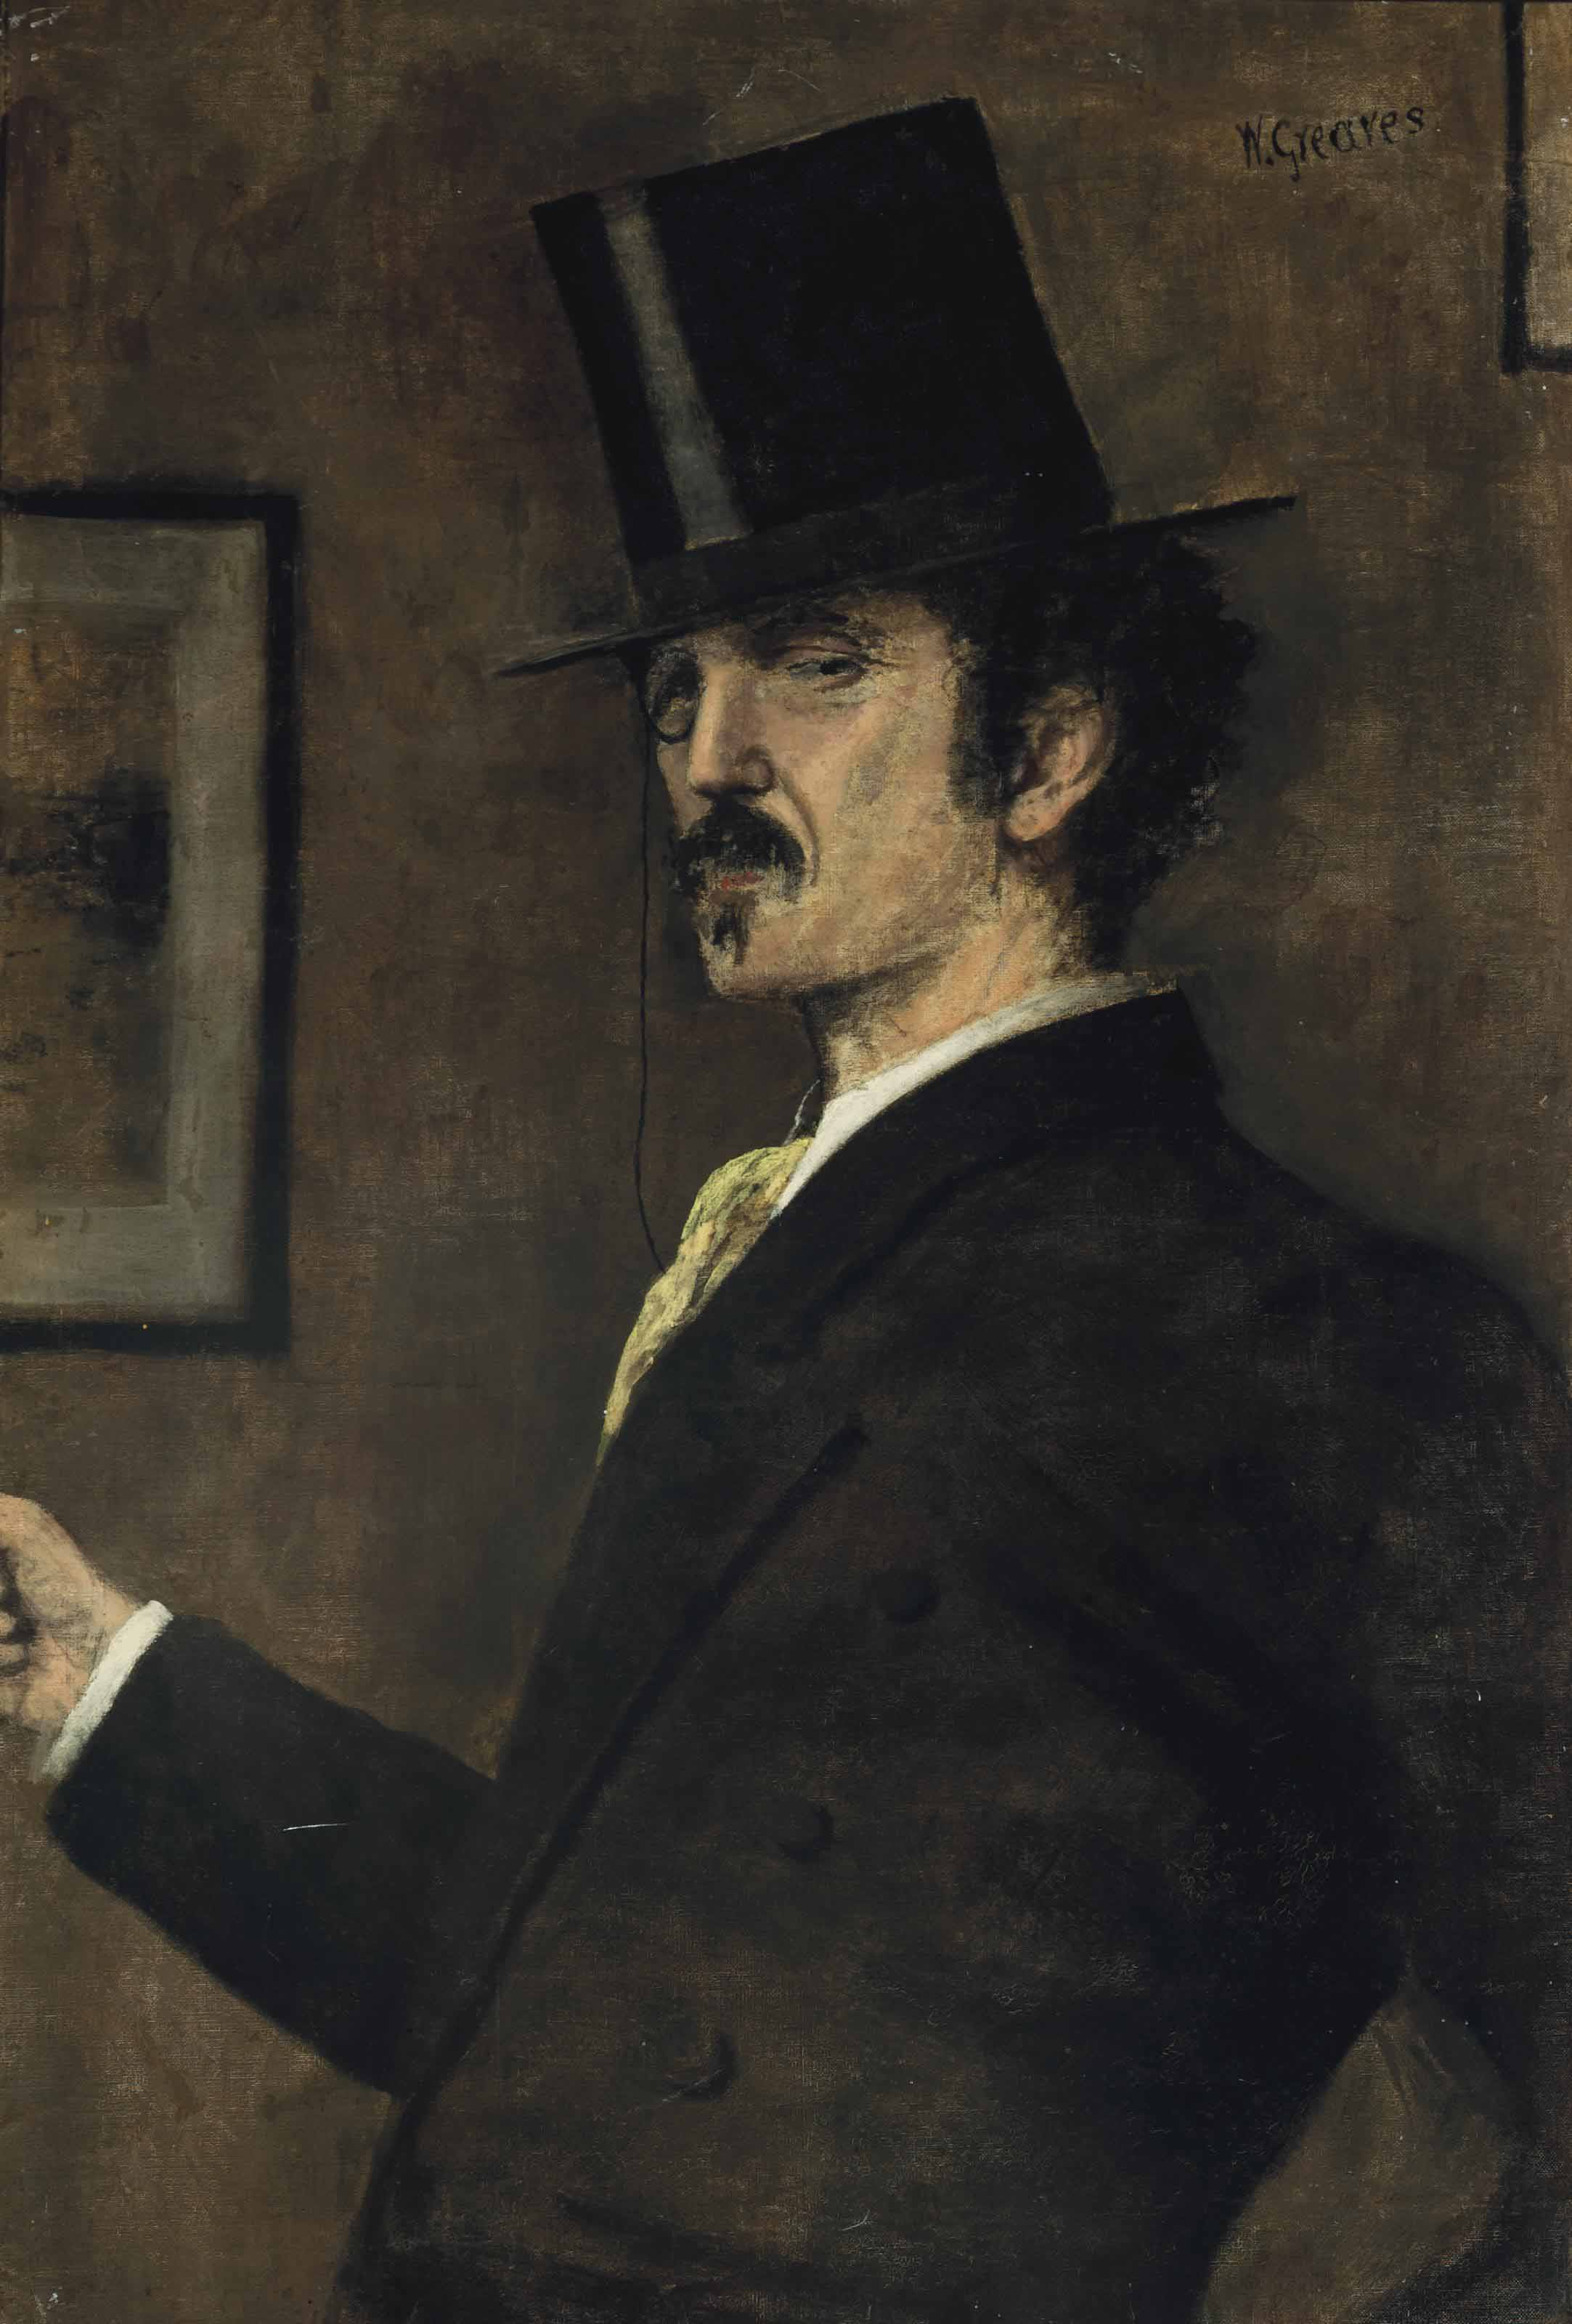 Portrait of Whistler, half-length, with monocle and top hat